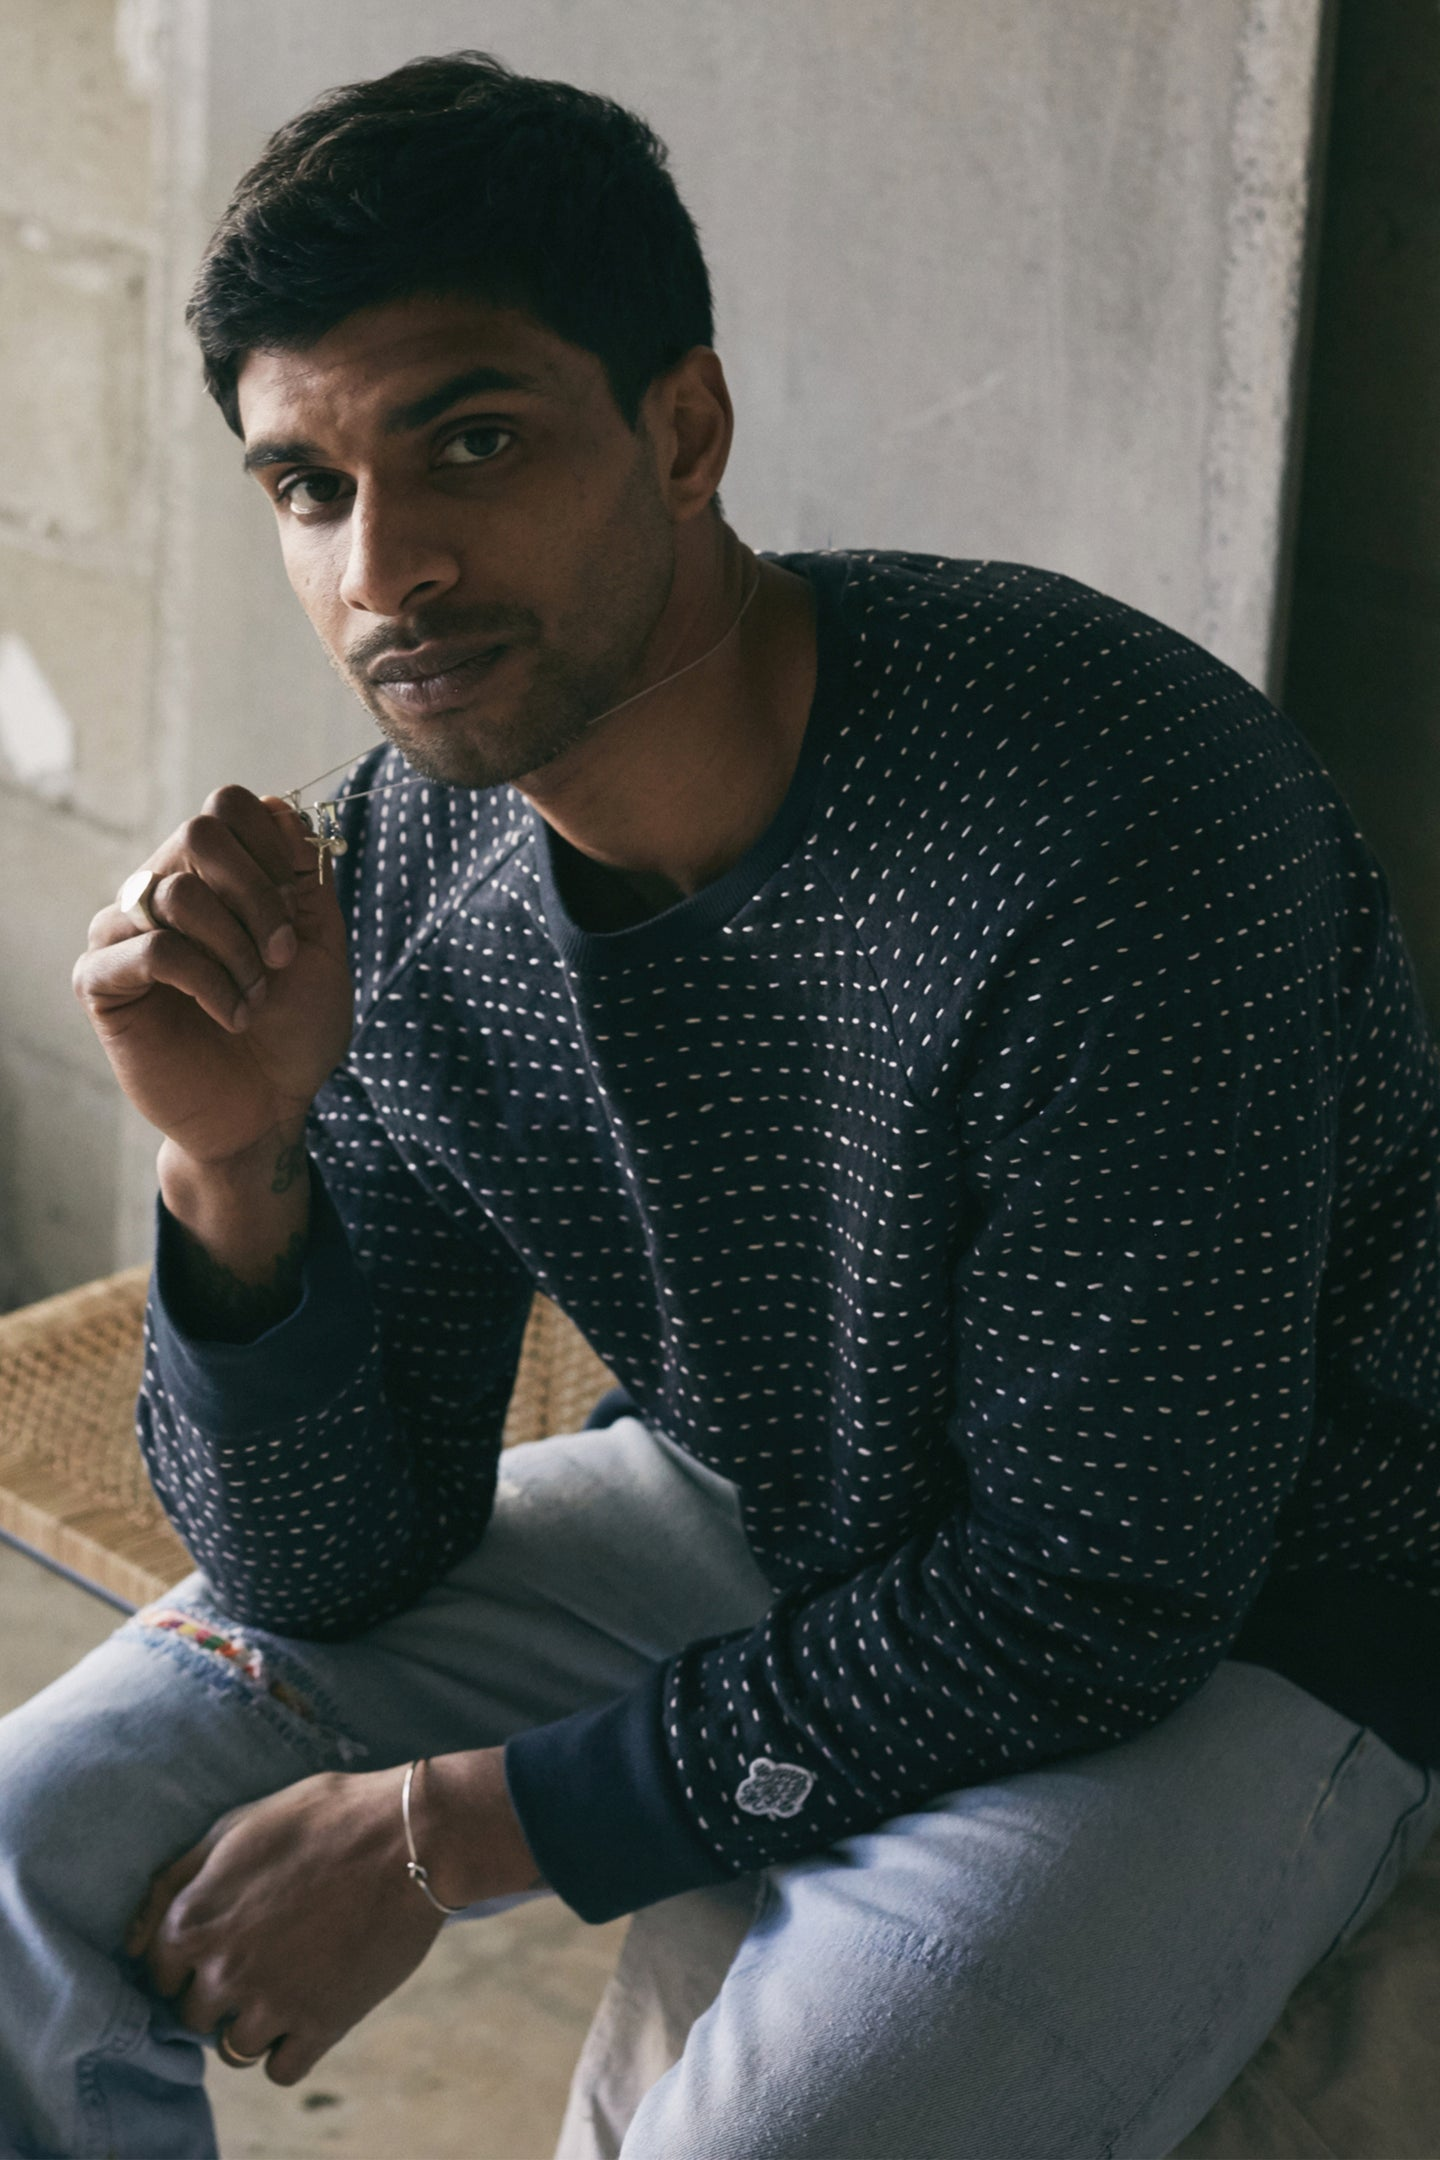 DAWA CREWNECK SWEATSHIRT - KANTHA STITCHED NAVY HEATHER